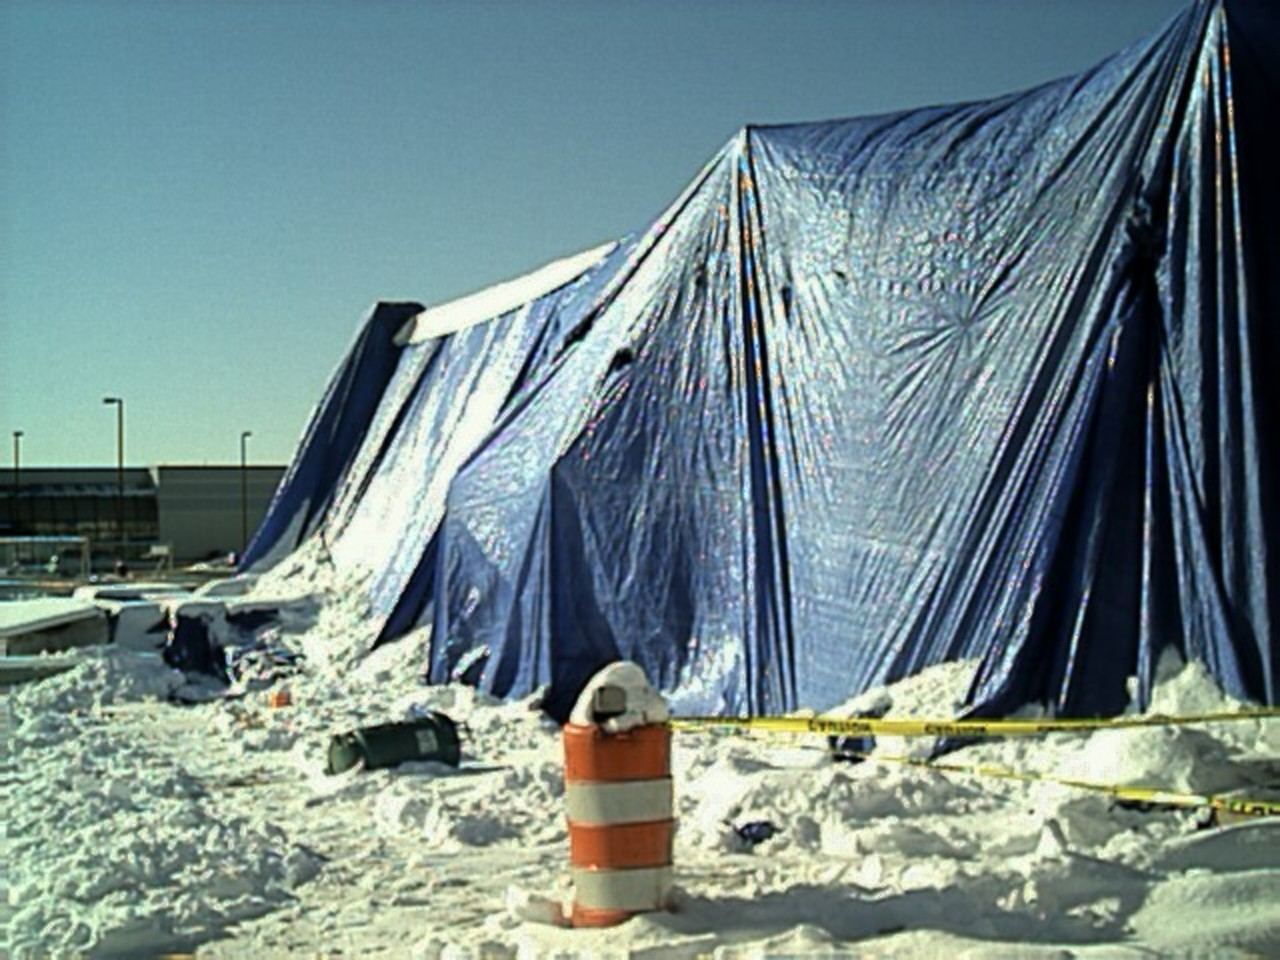 The tarps barely survived. we had to clear off the snow from the tops to relieve the pressure.